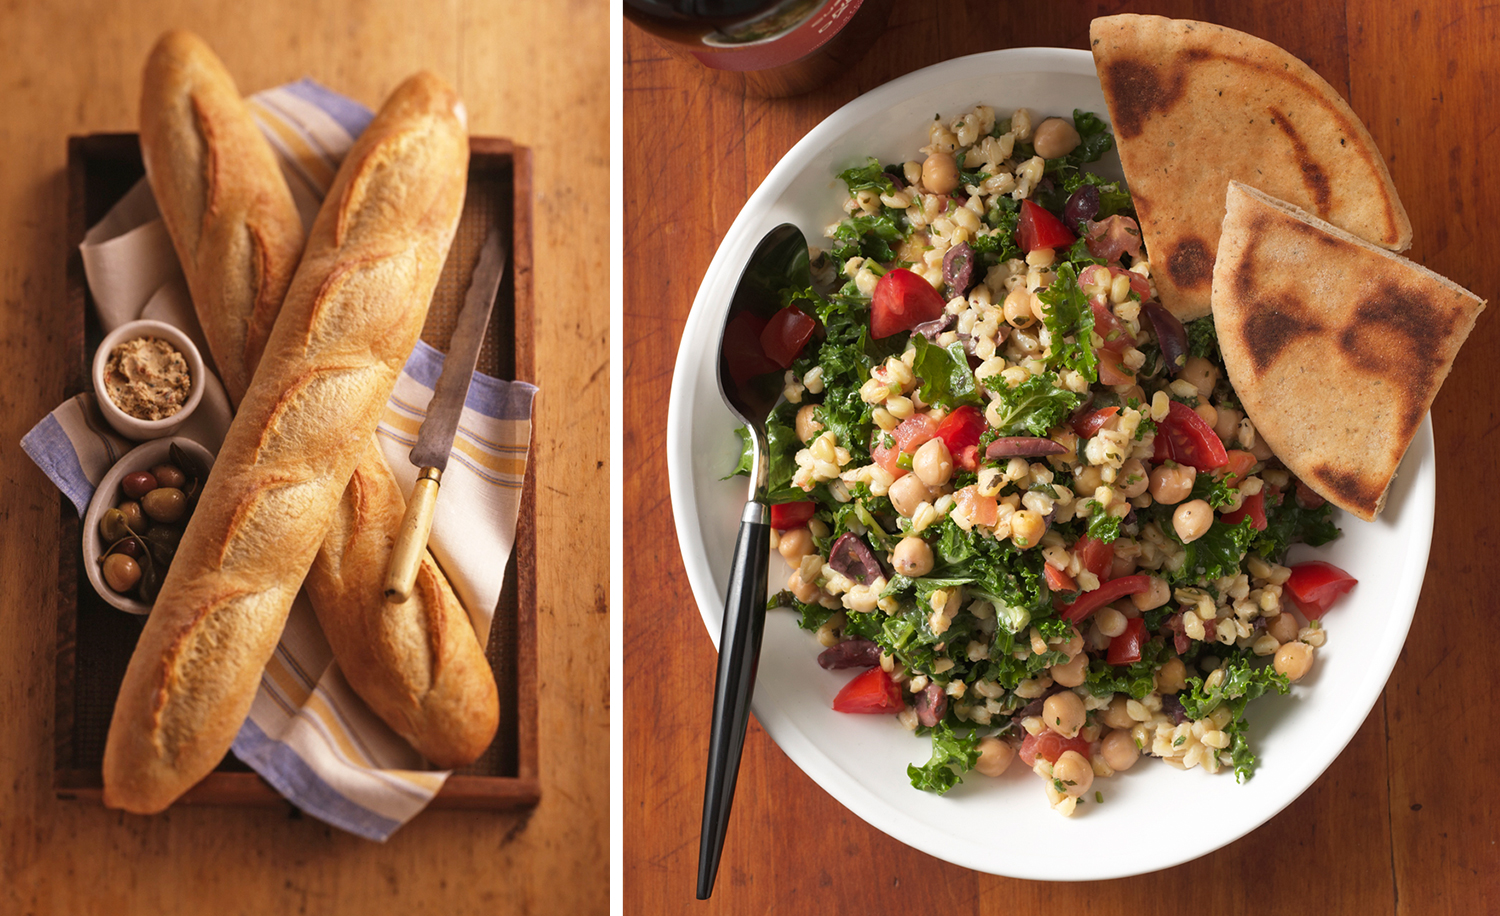 Baguette And Chick Pea Salad | Tony Kubat Photography